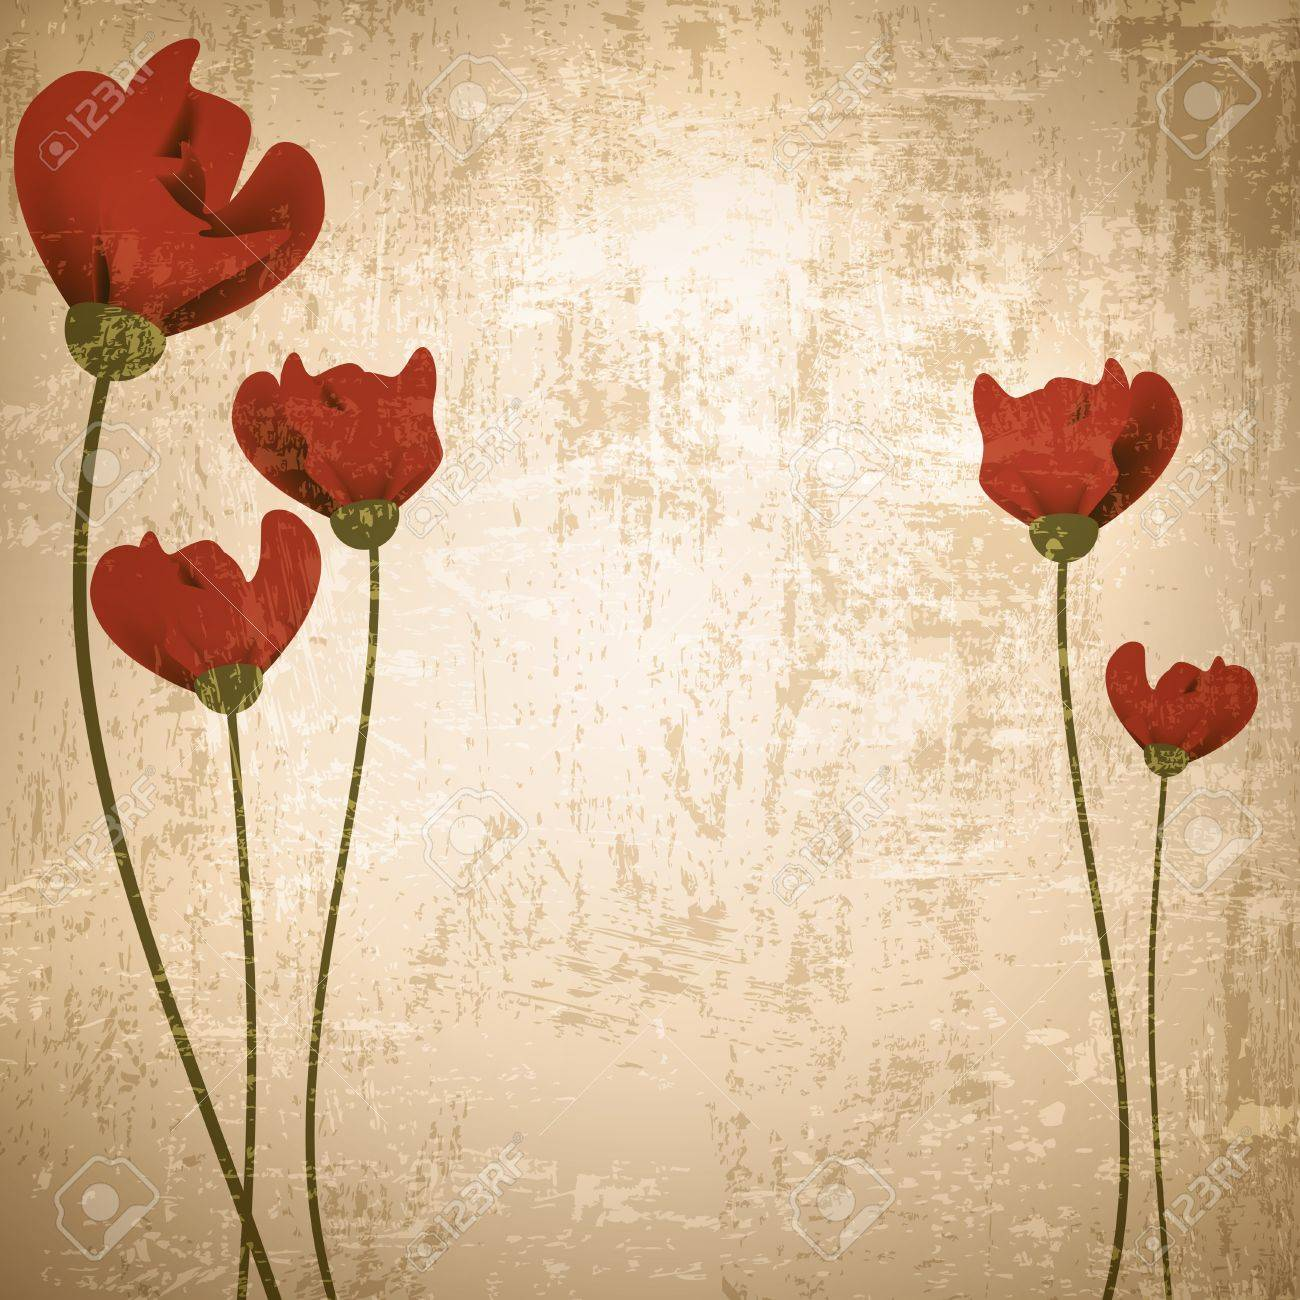 Vintage grunge floral background with red poppies - 12486540